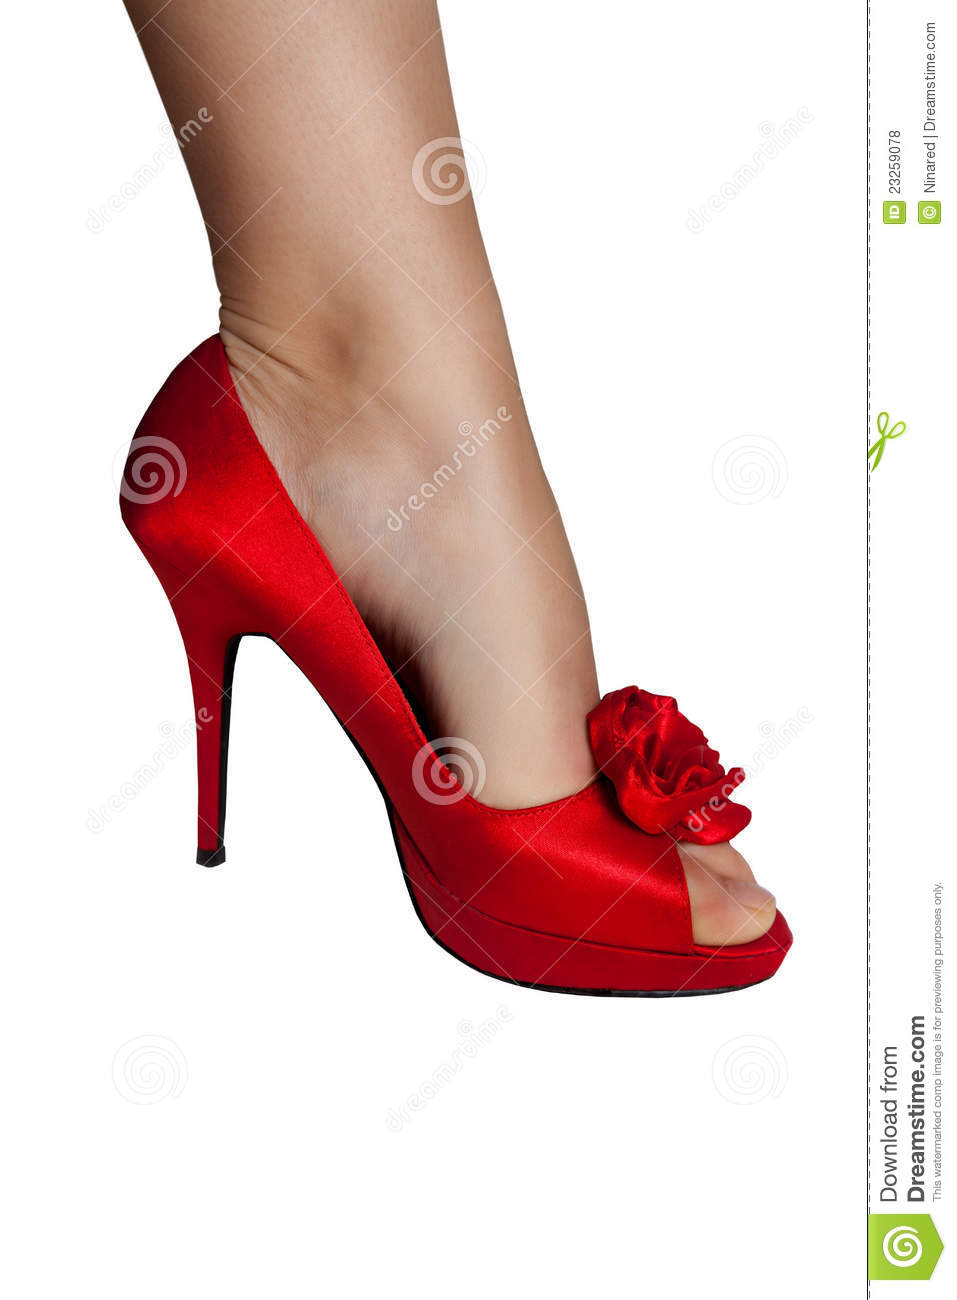 Red Women Shoes Isolated Royalty Free Stock Photos - Image: 23259078